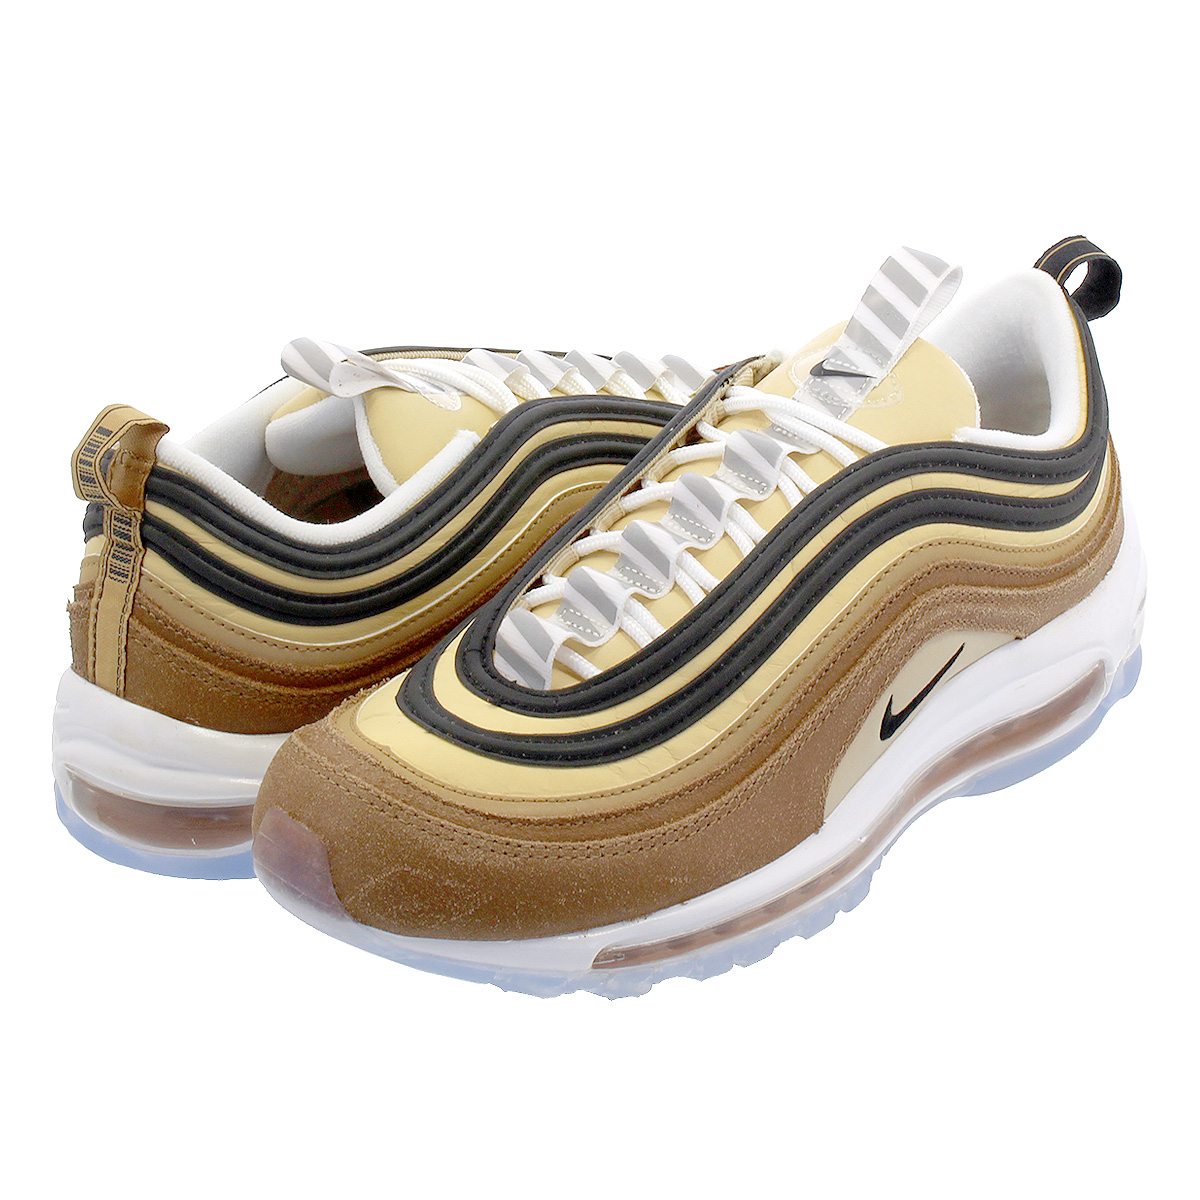 95370abf64 NIKE AIR MAX 97 Kie Ney AMAX 97 ALE BROWN/BLACK/ELEMENTAL GOLD 921,826 ...